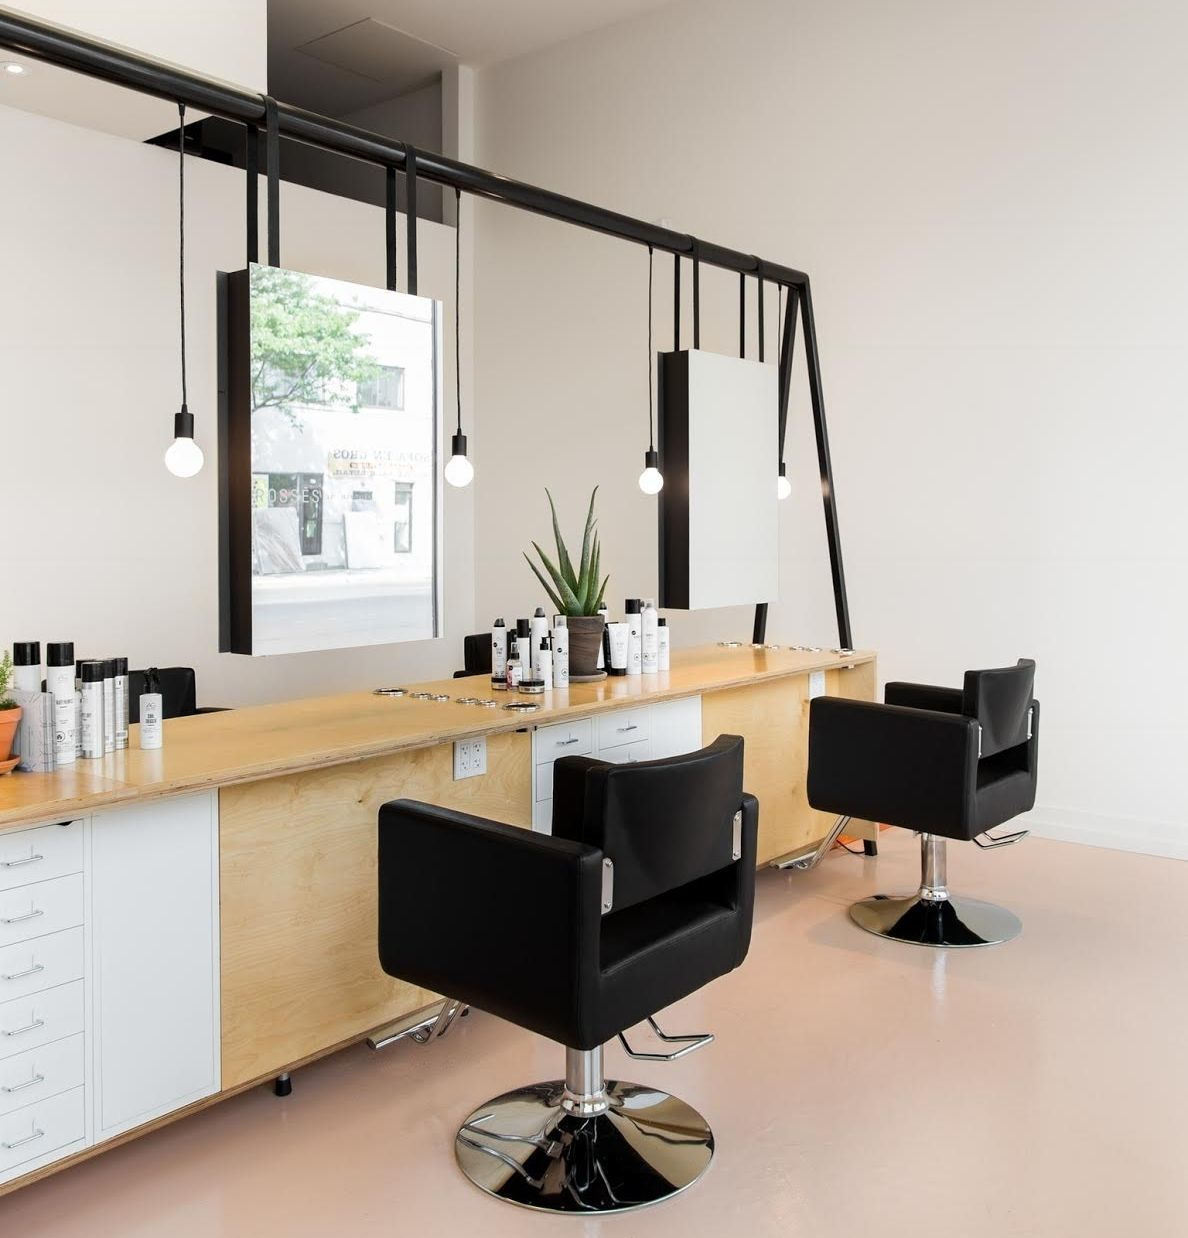 Un Sol En Beton Rose Pour Donner Un Look Moderne A Ce Salon De Coiffure Bet Bet Beton Coiffure D Salon Interior Design Hair Salon Interior Salon Decor